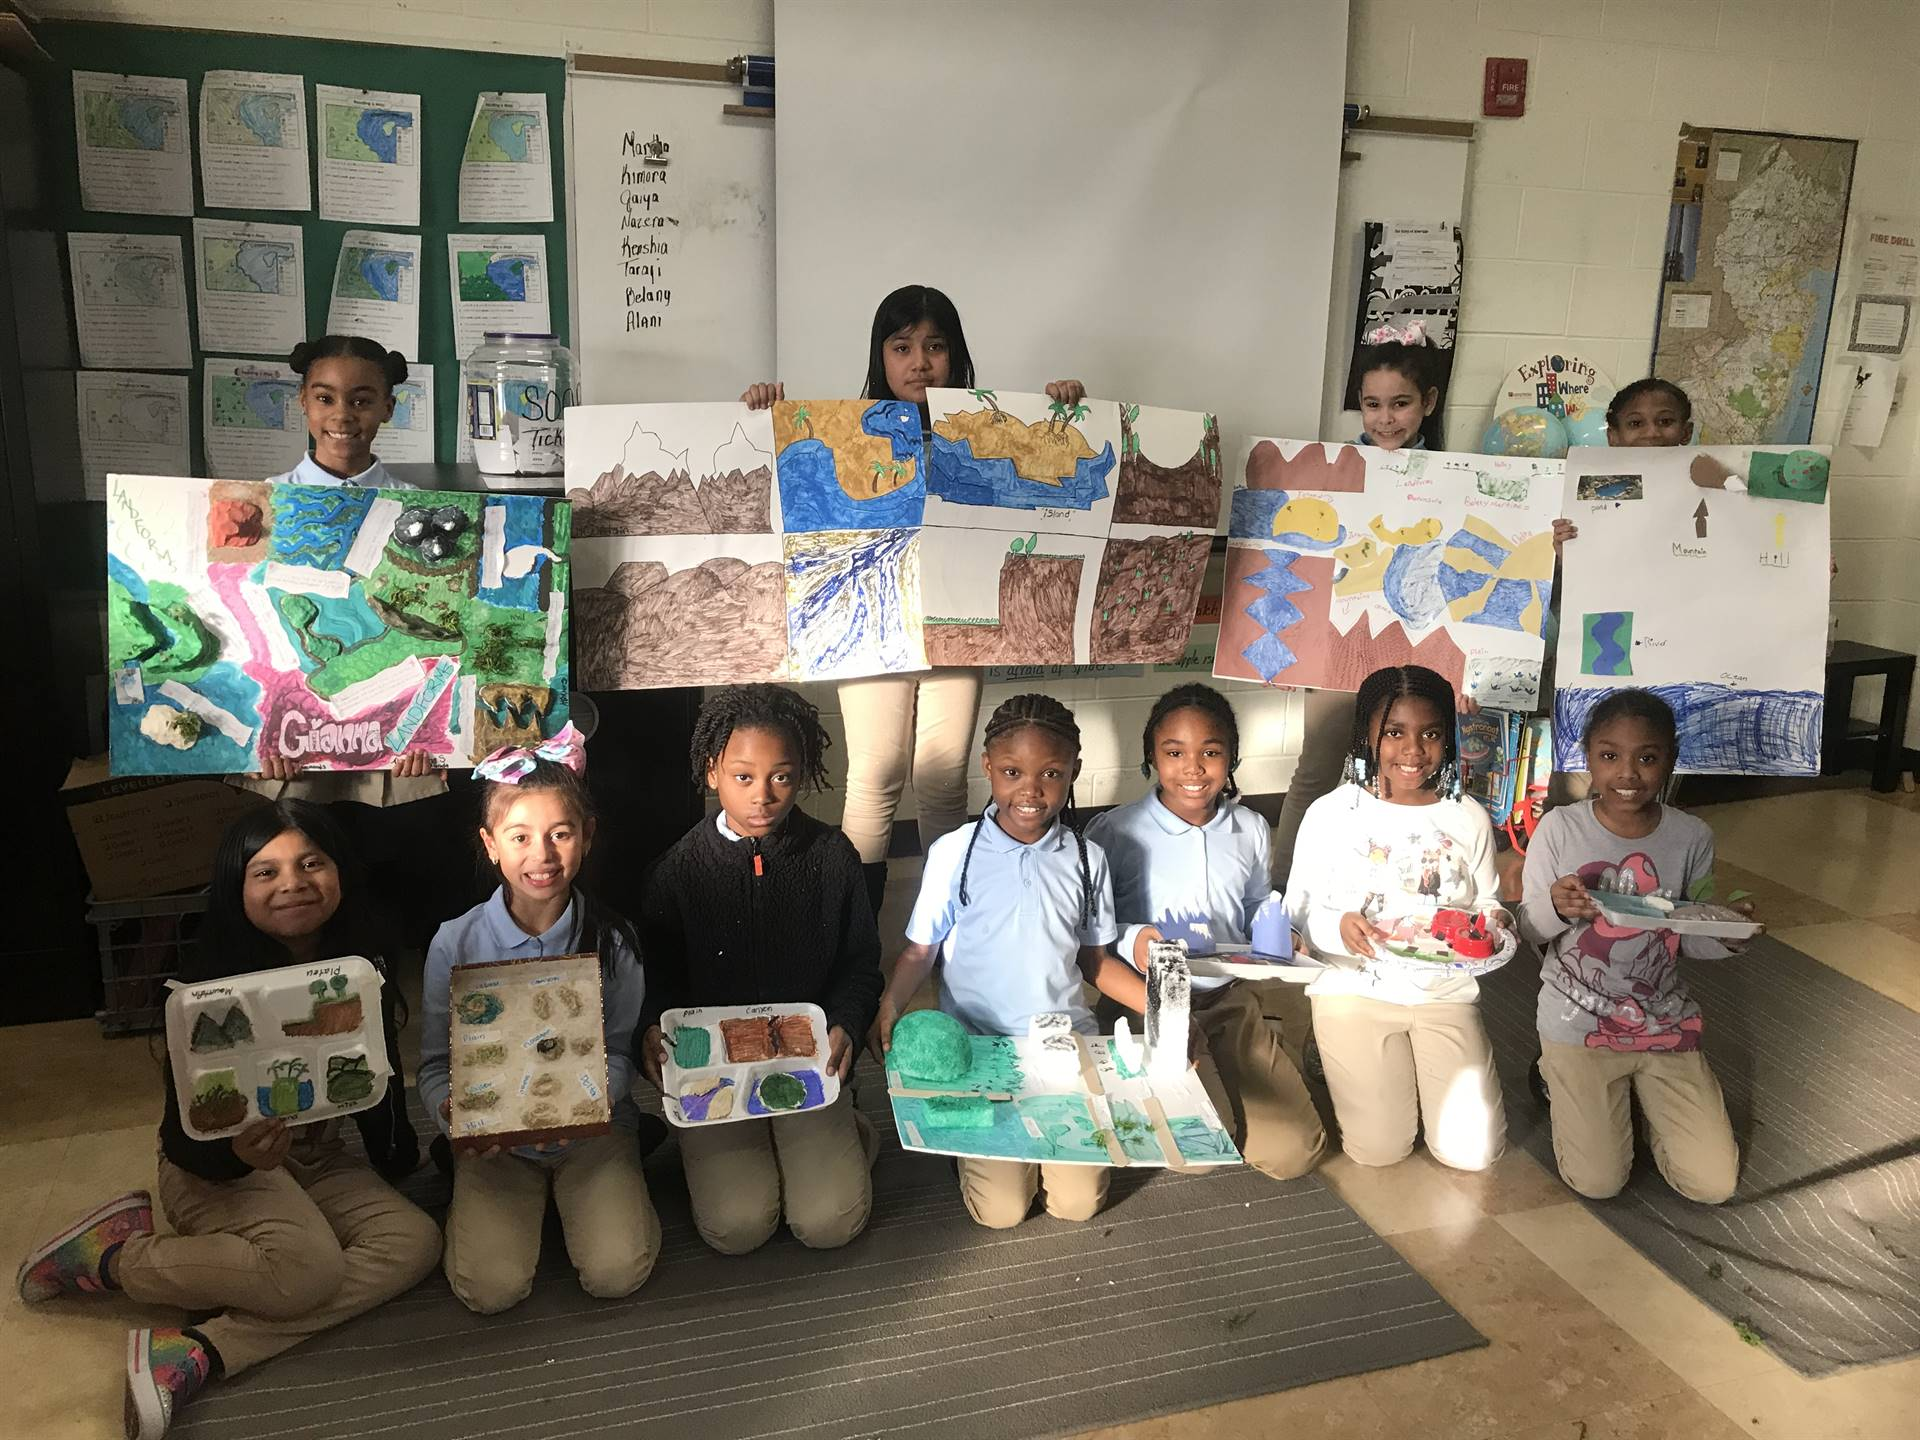 Our Class Projects